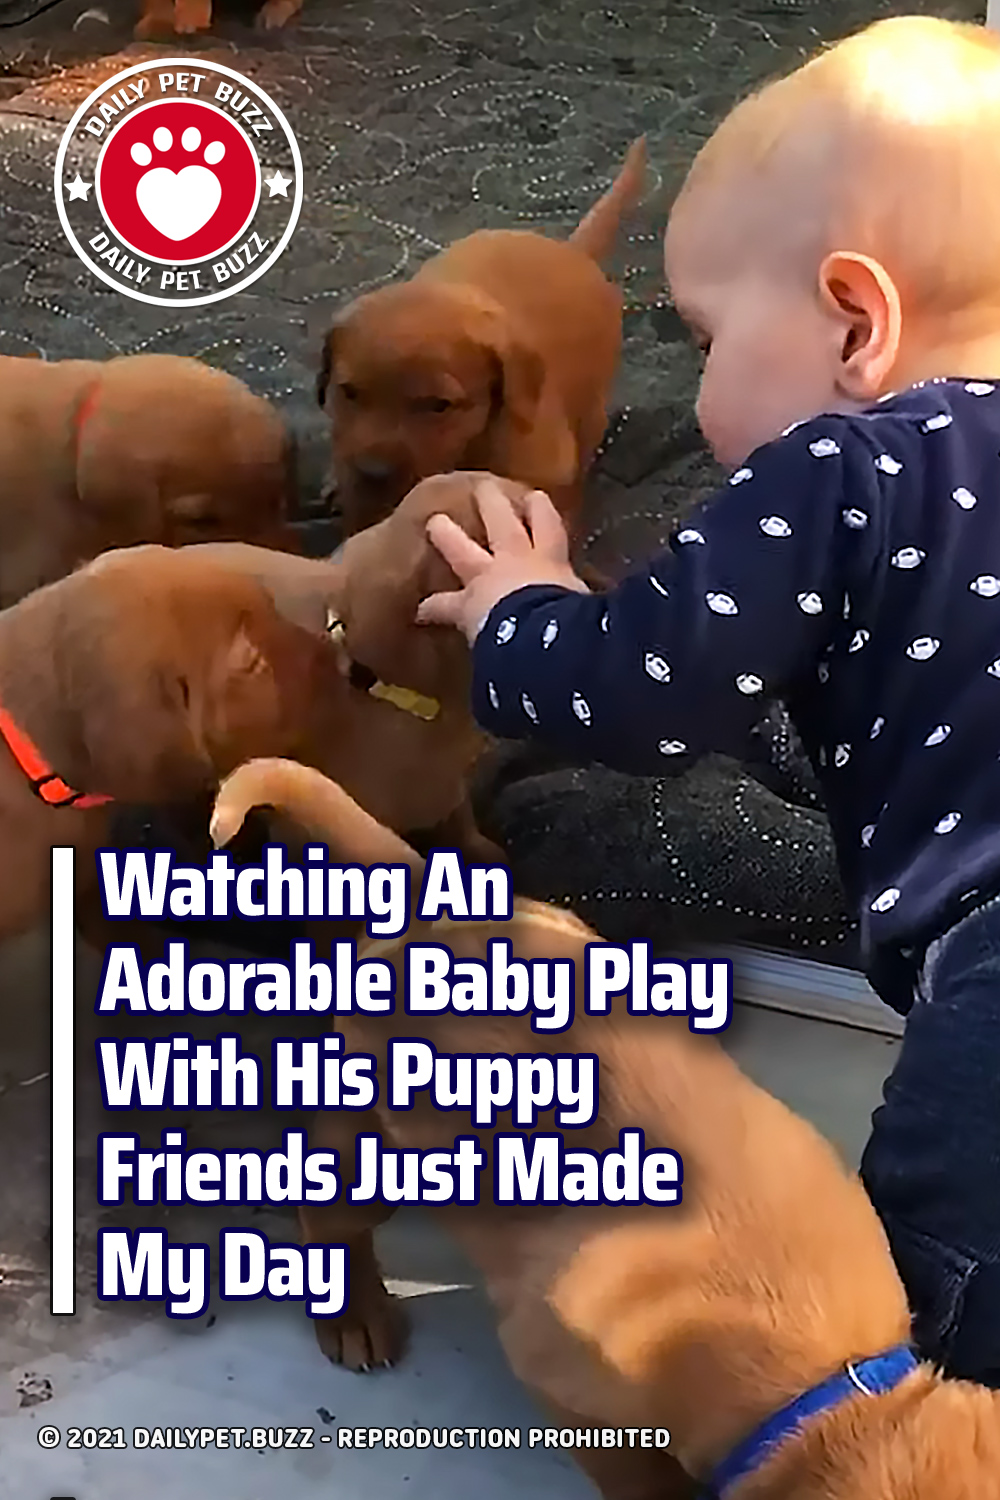 Watching An Adorable Baby Play With His Puppy Friends Just Made My Day